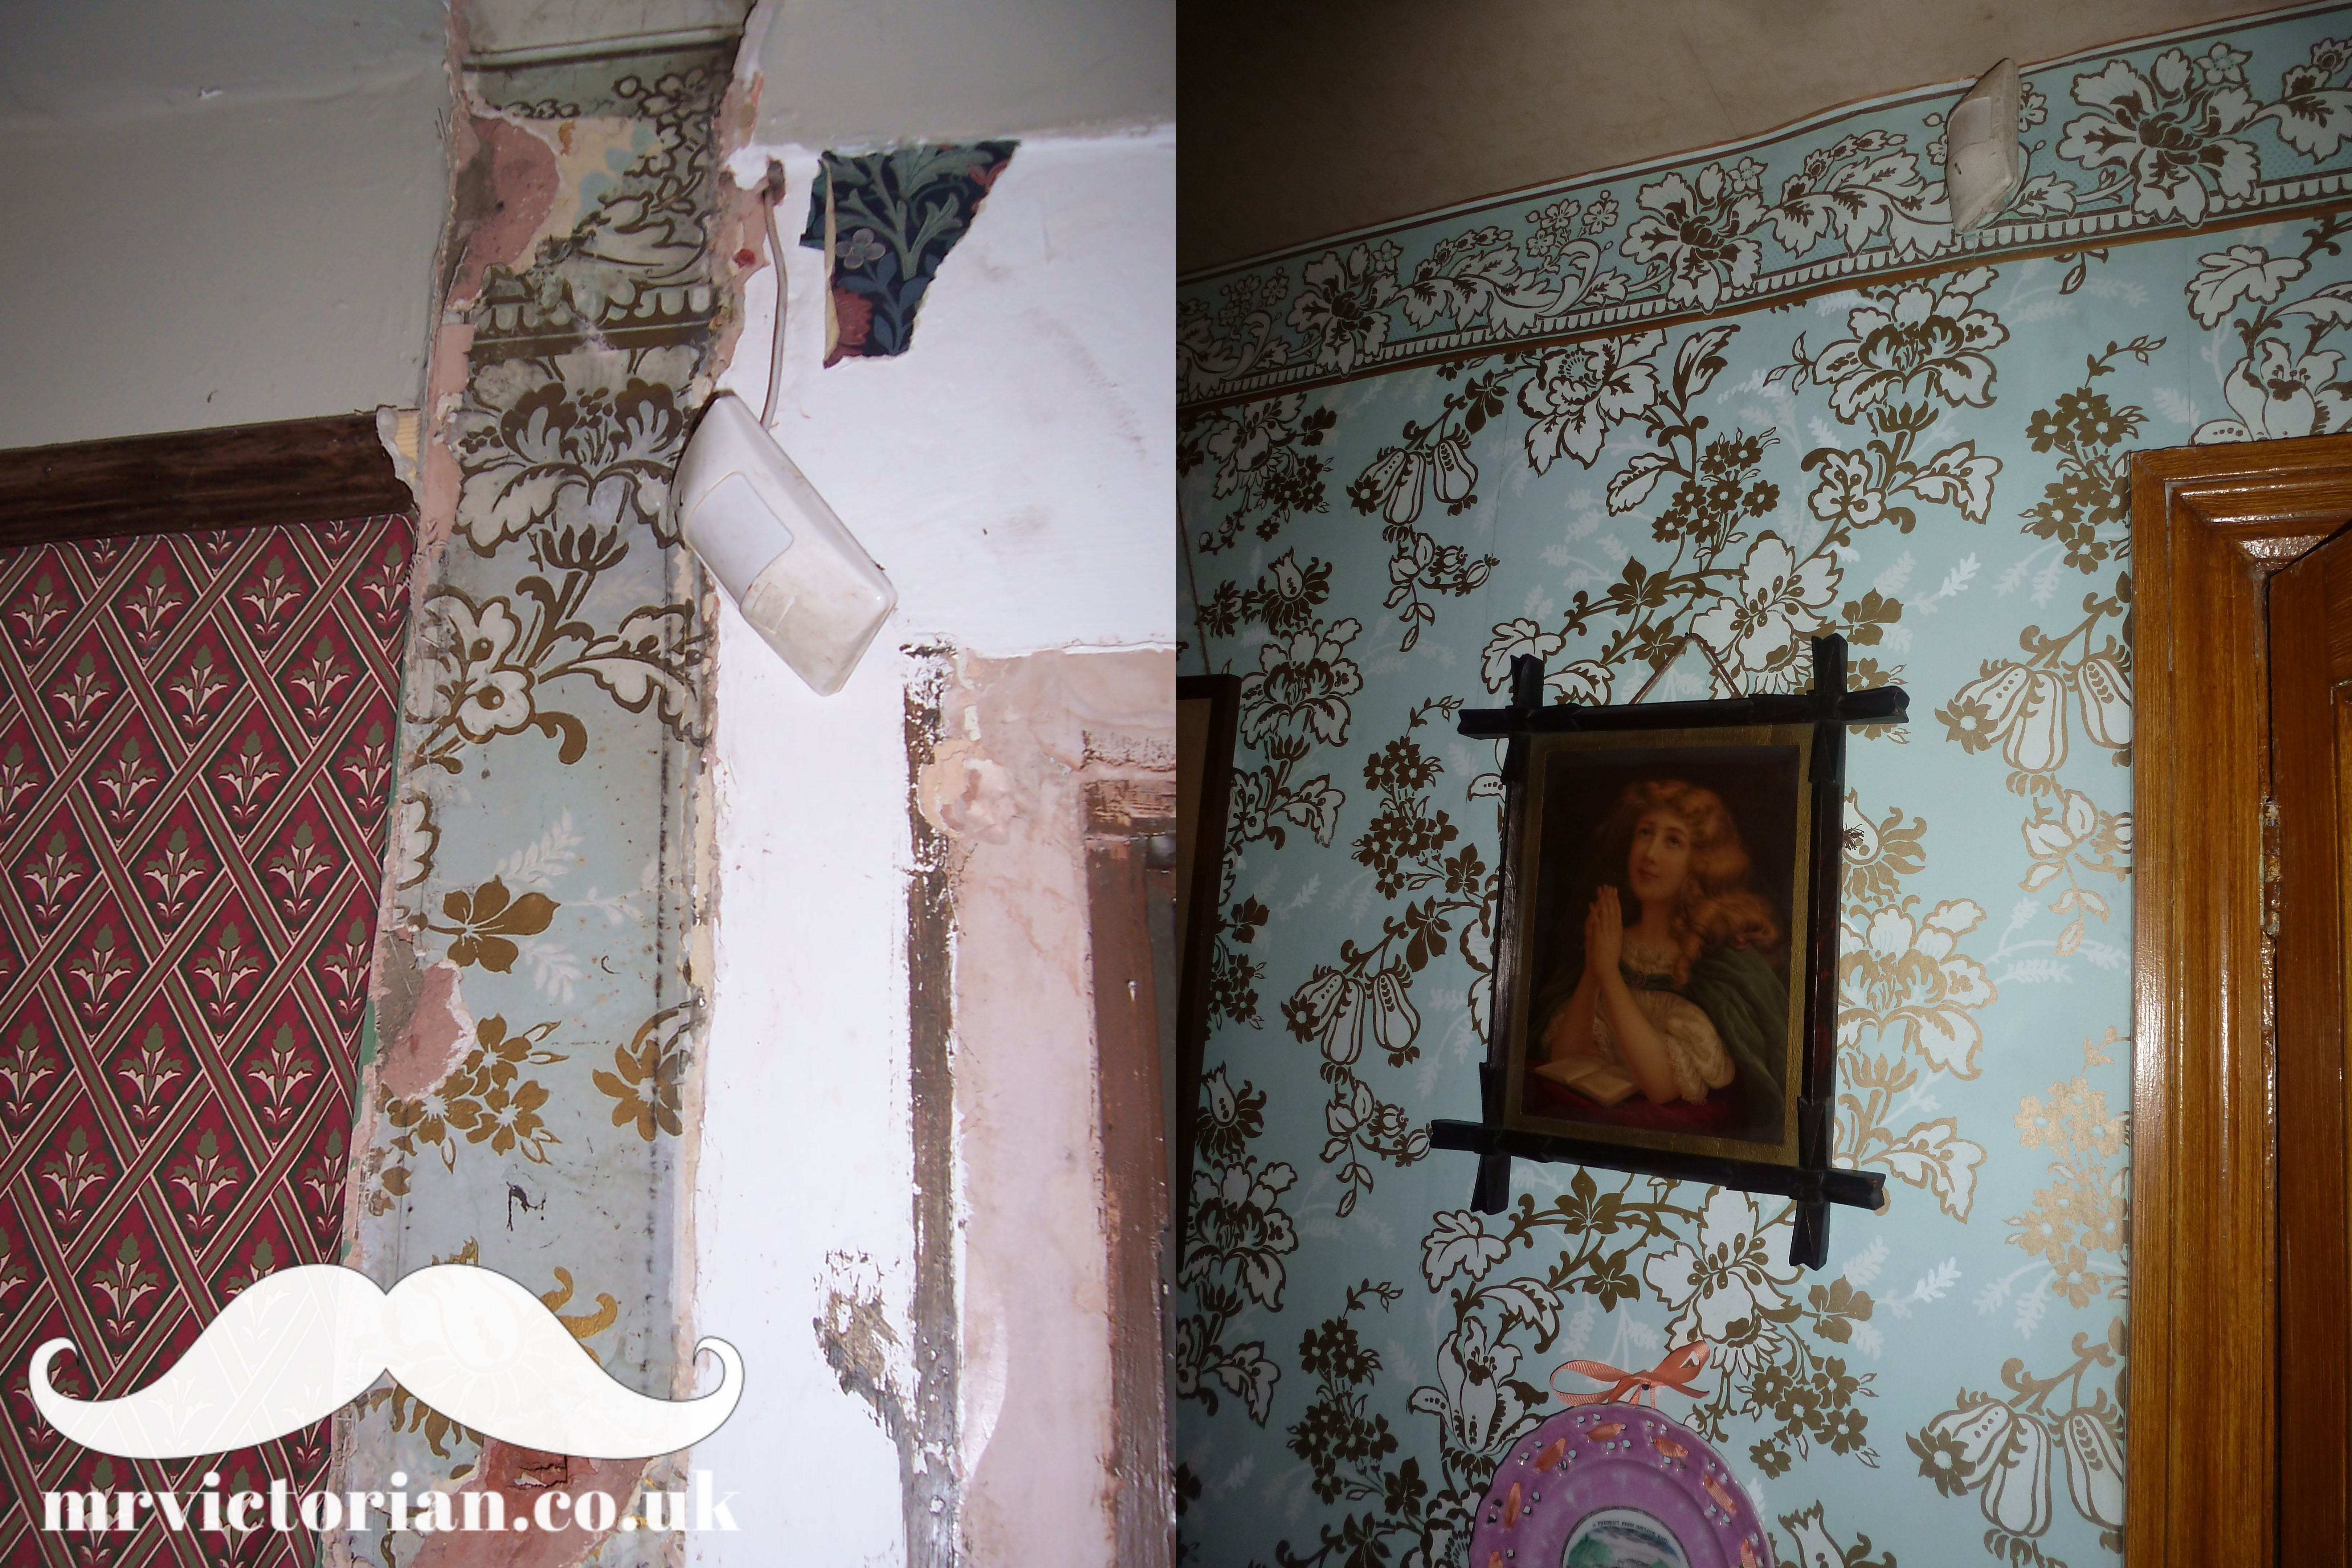 Victorian 1890 wallpaper restored Chapel Street Rose period house restoration